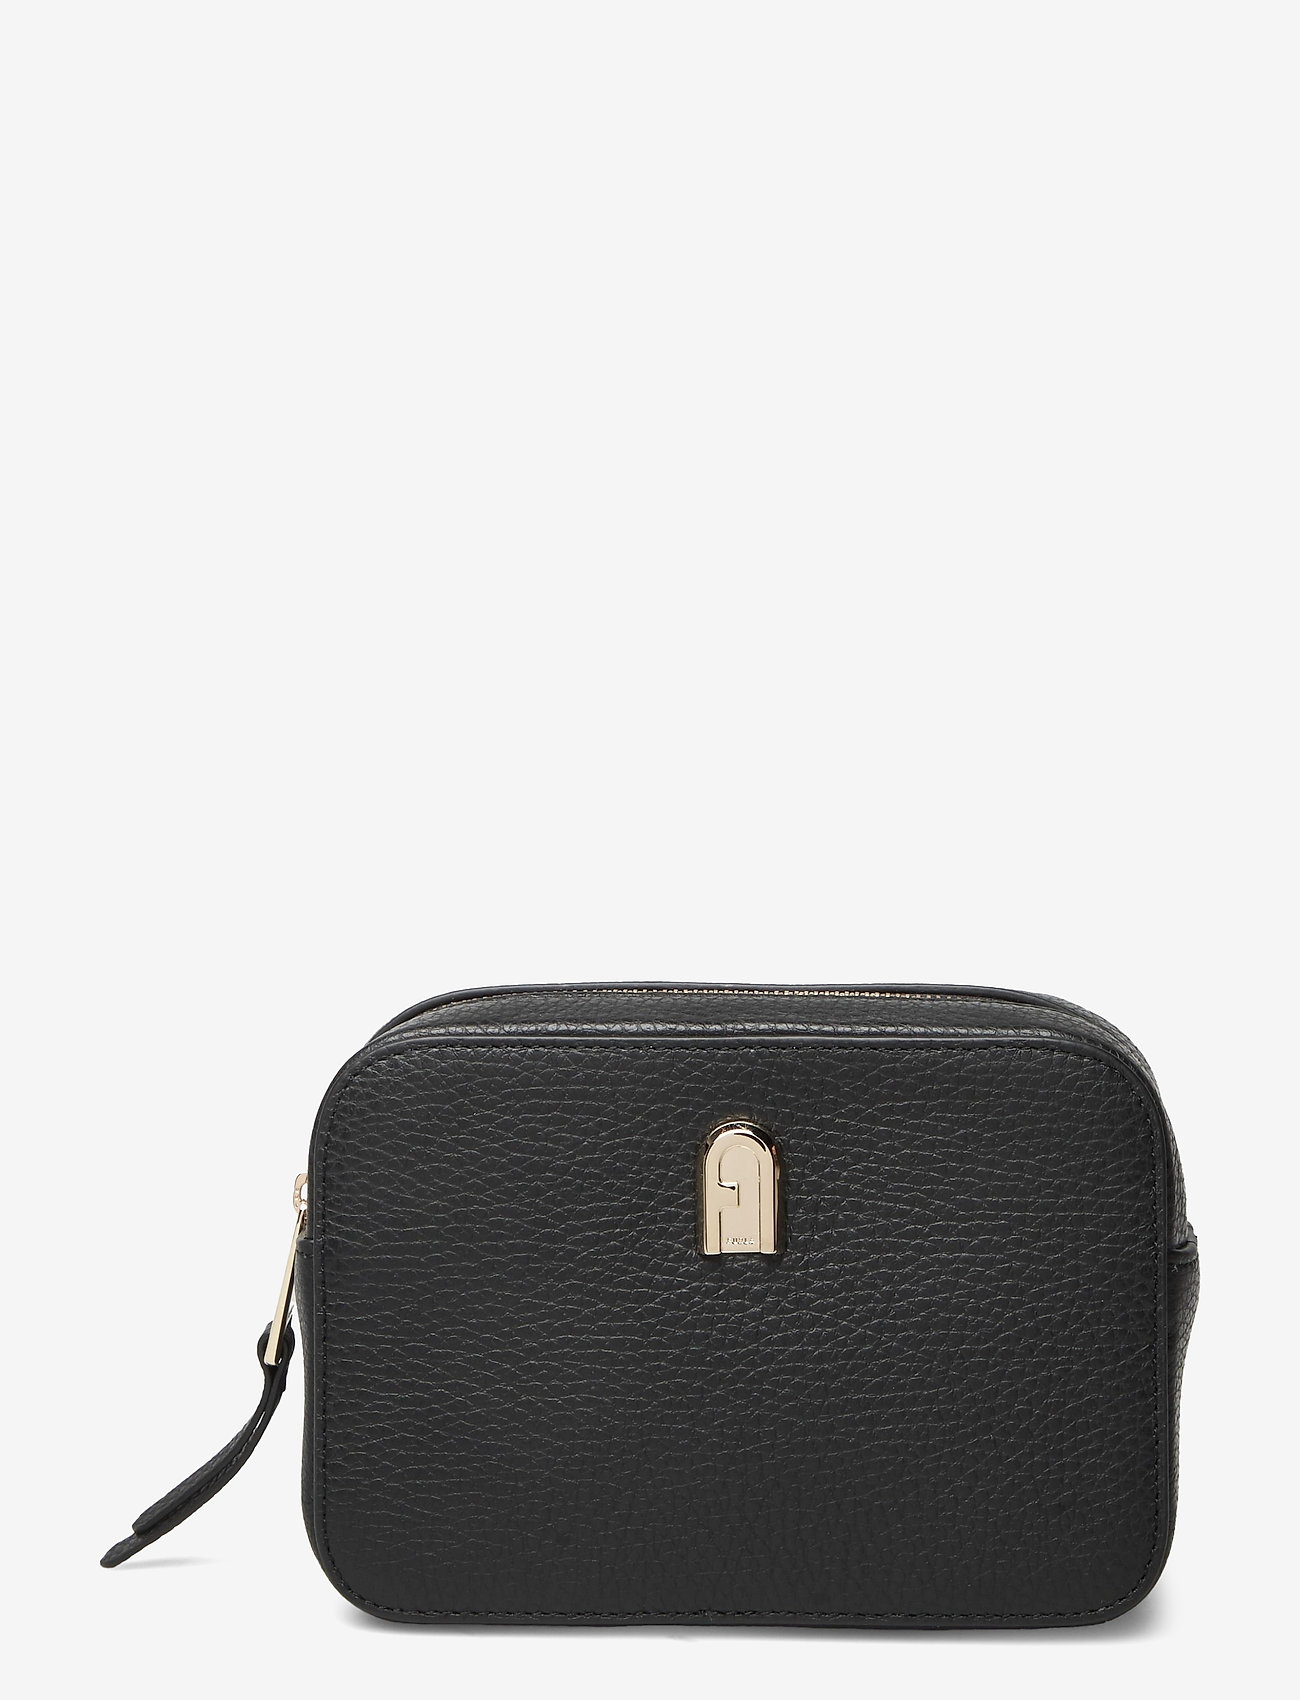 Furla - FURLA SLEEK MINI BELT BAG - tassen - nero - 0